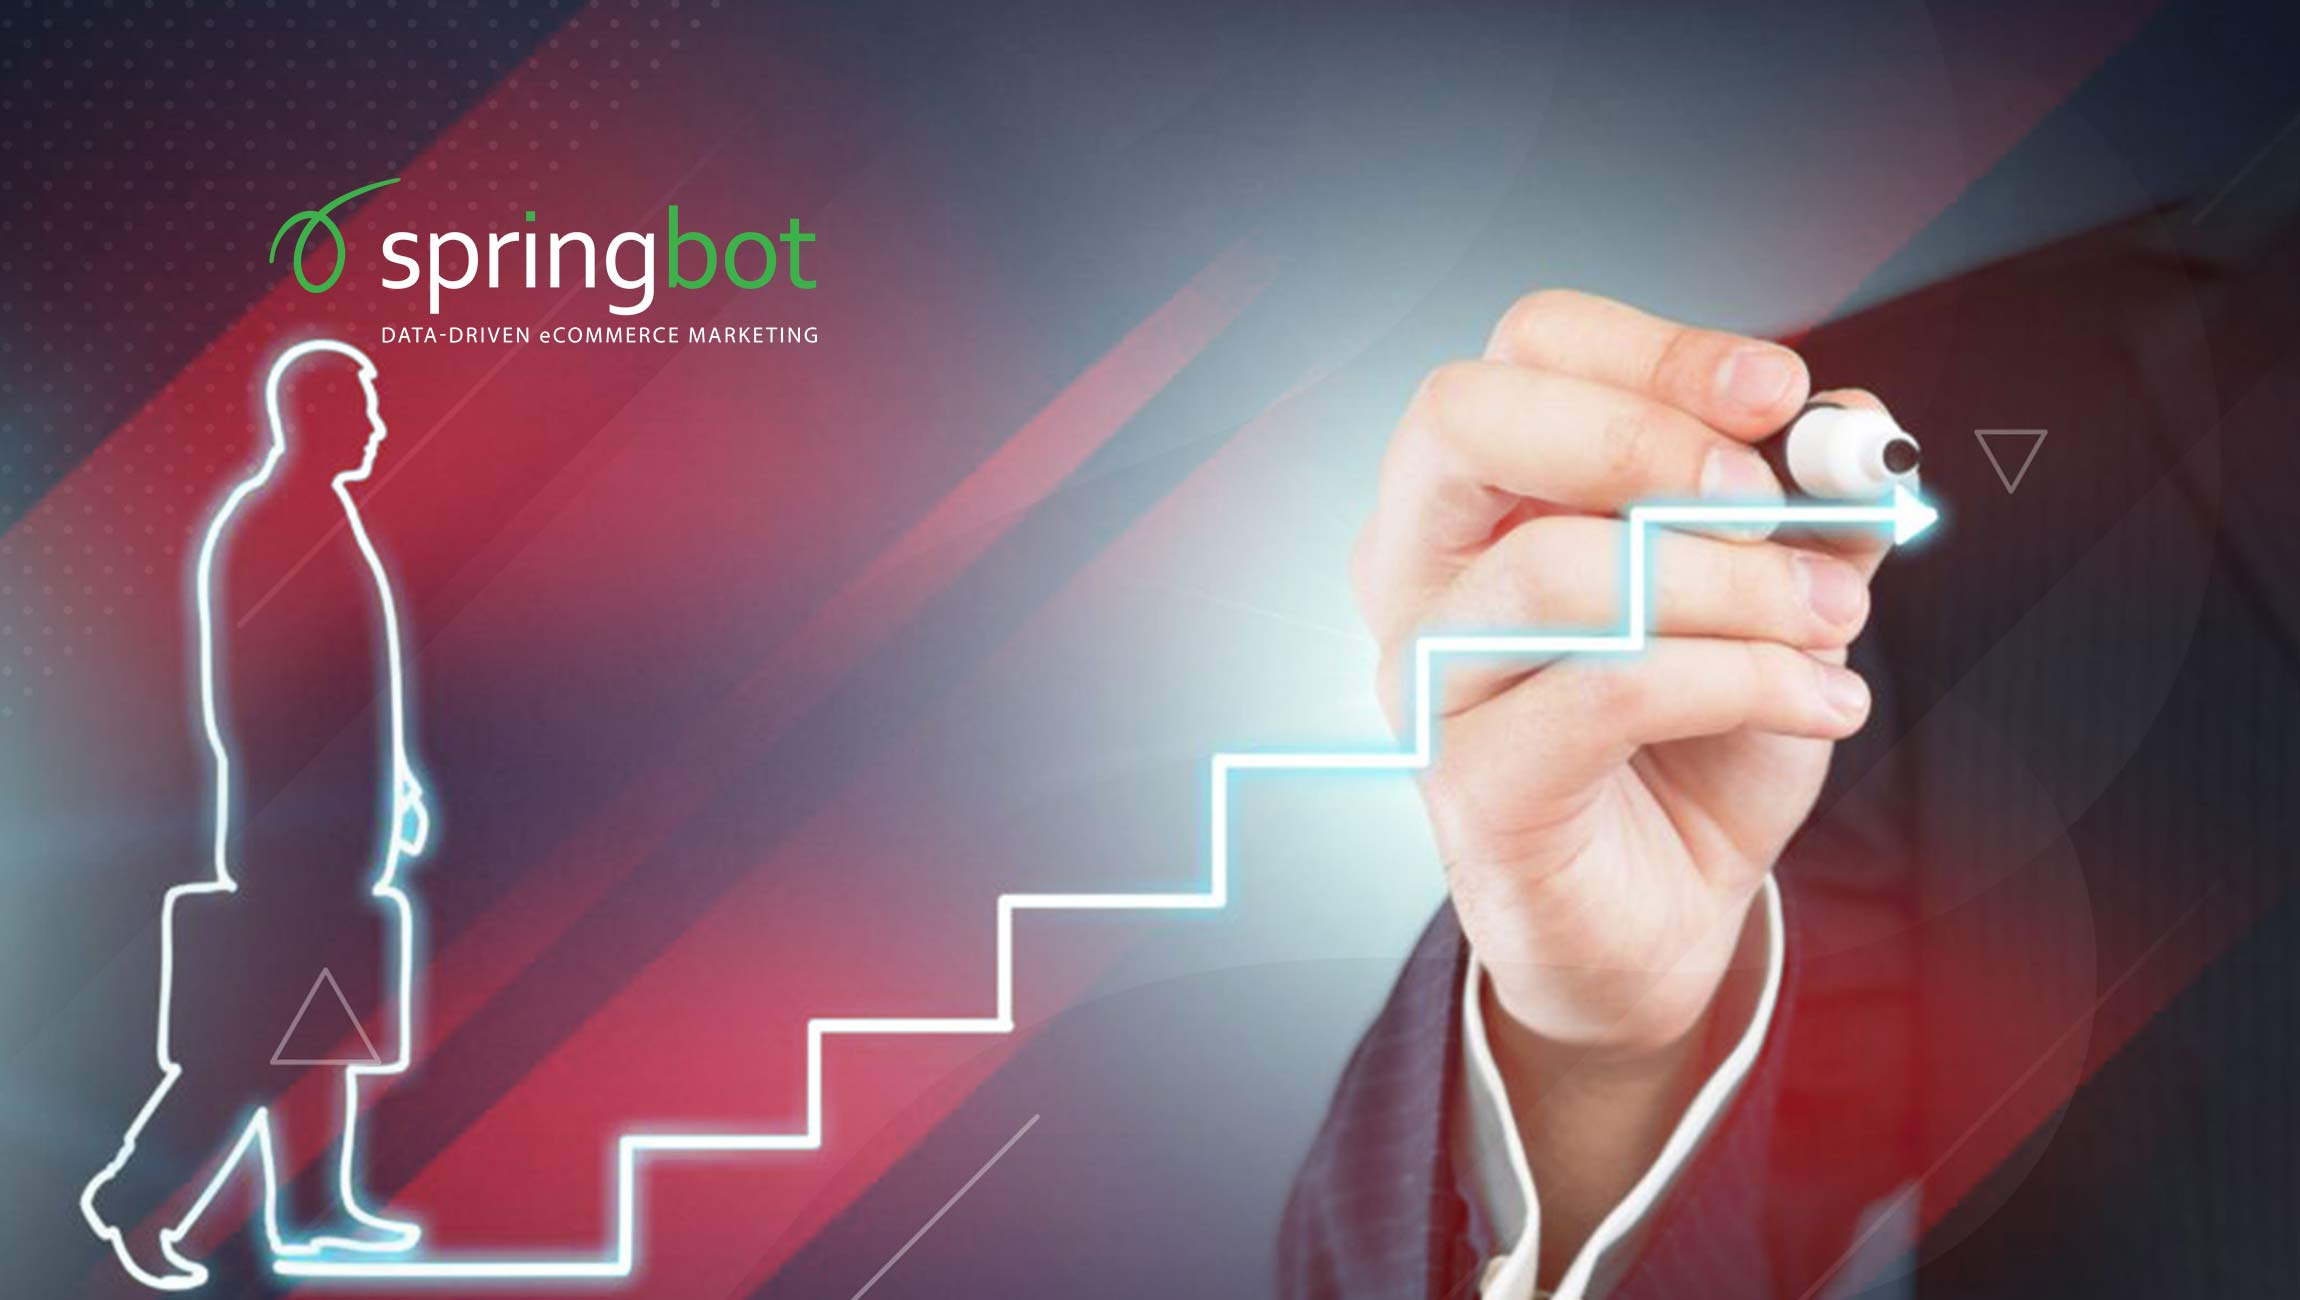 Sprinbot bags 14M, acquires Matcha